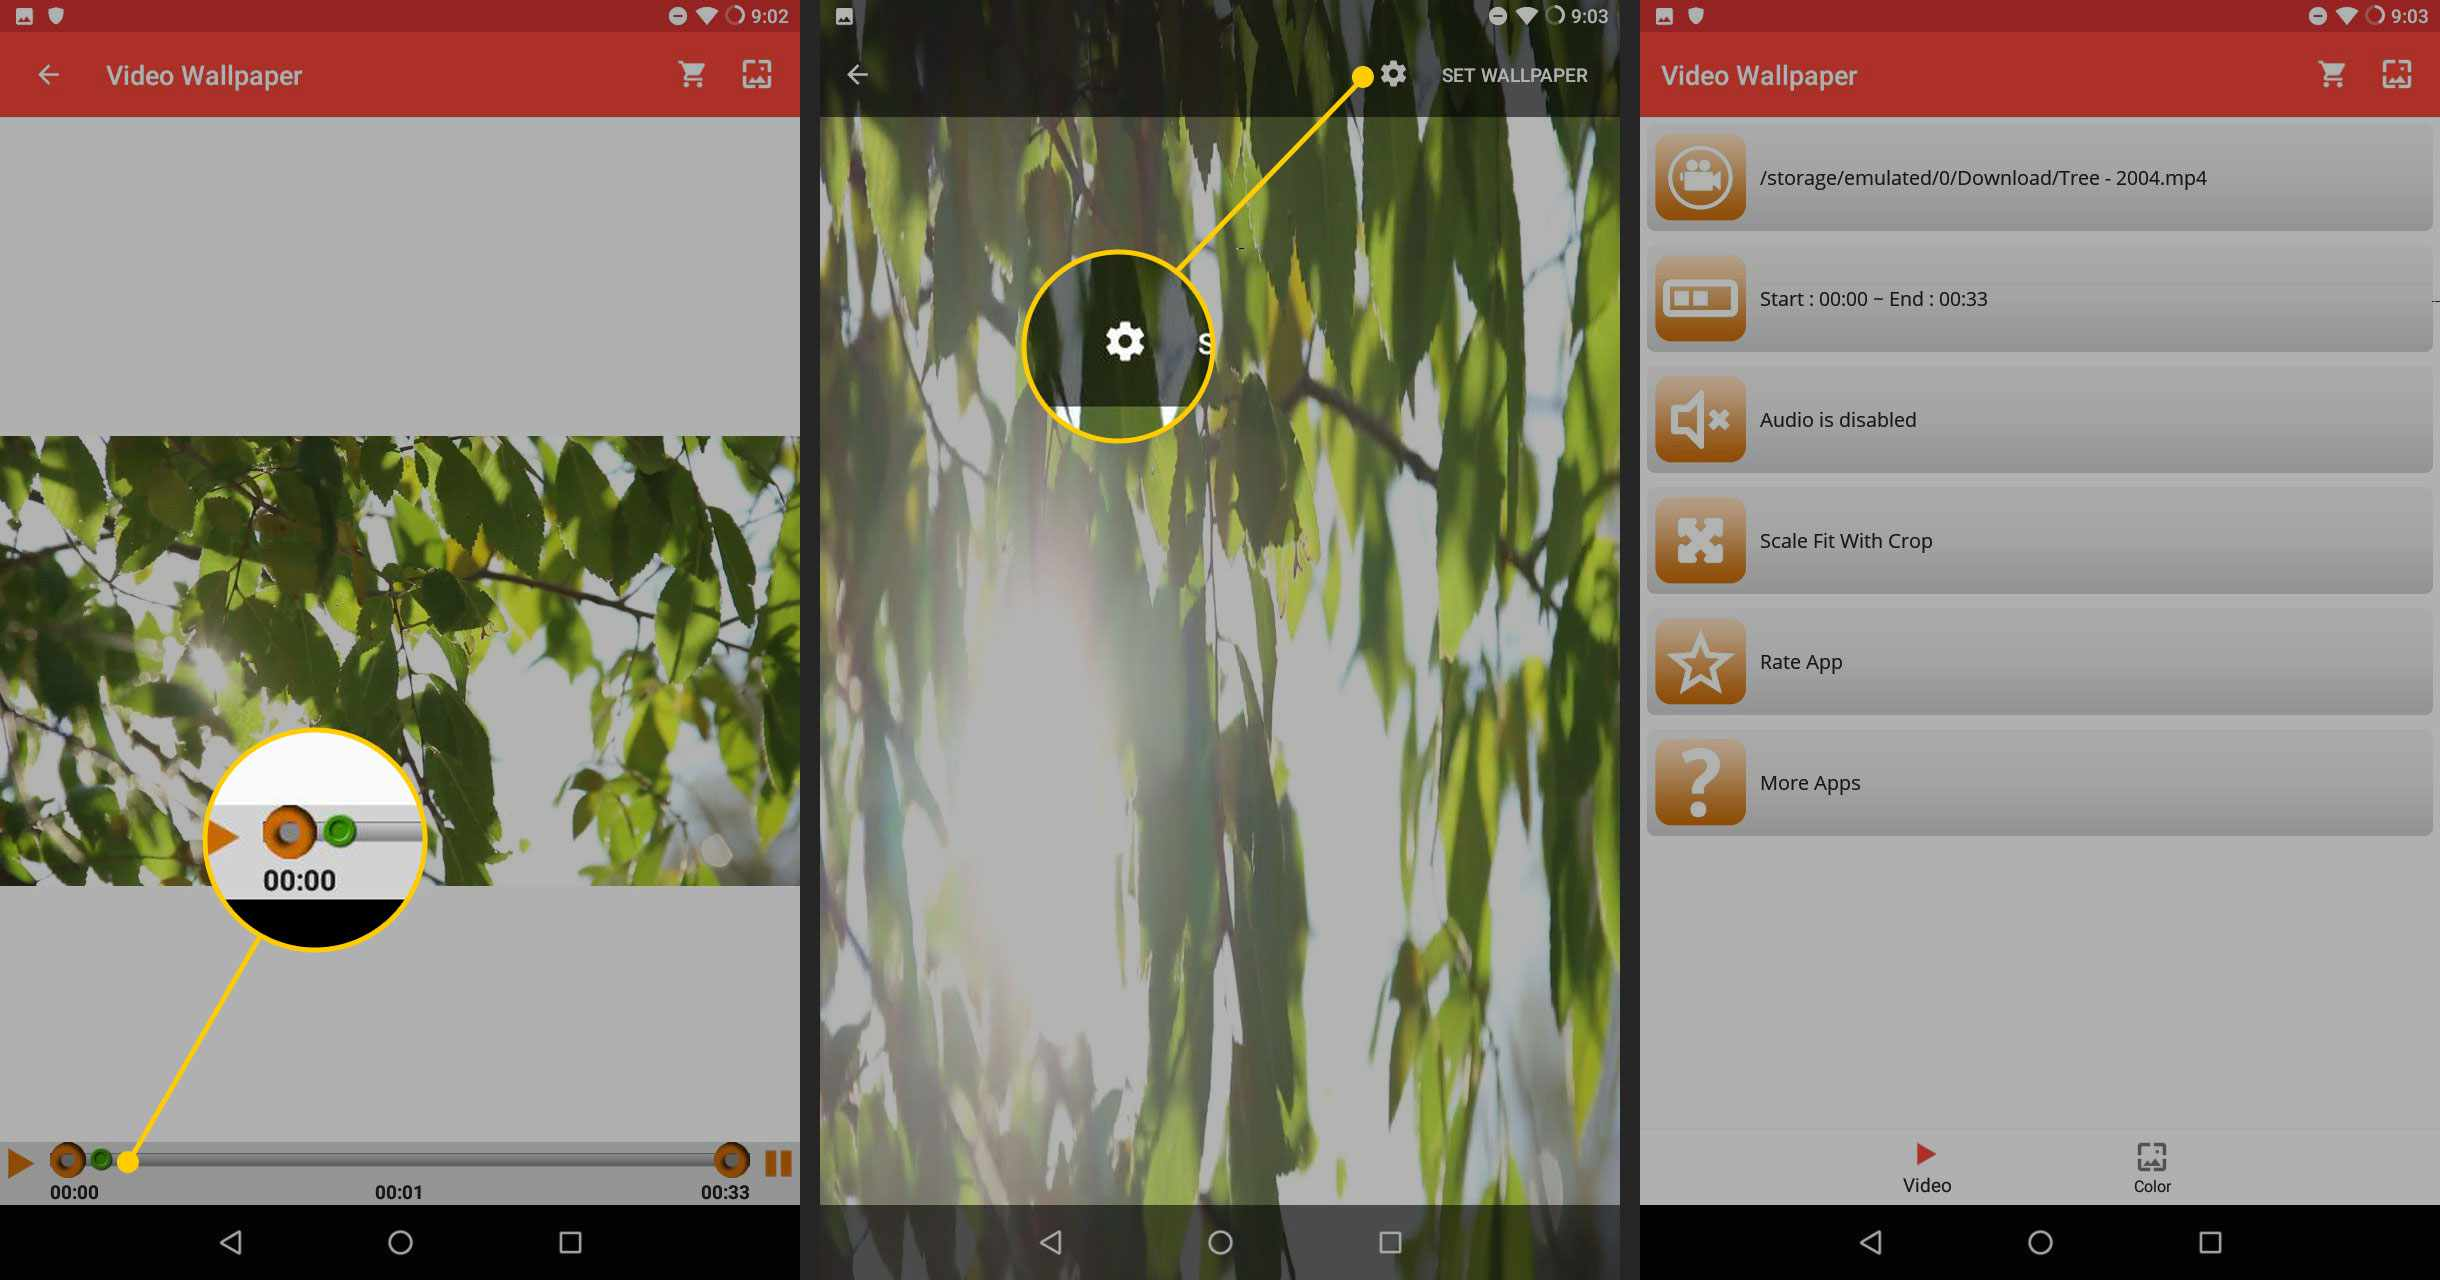 Video Your Wallpaper on a Phone